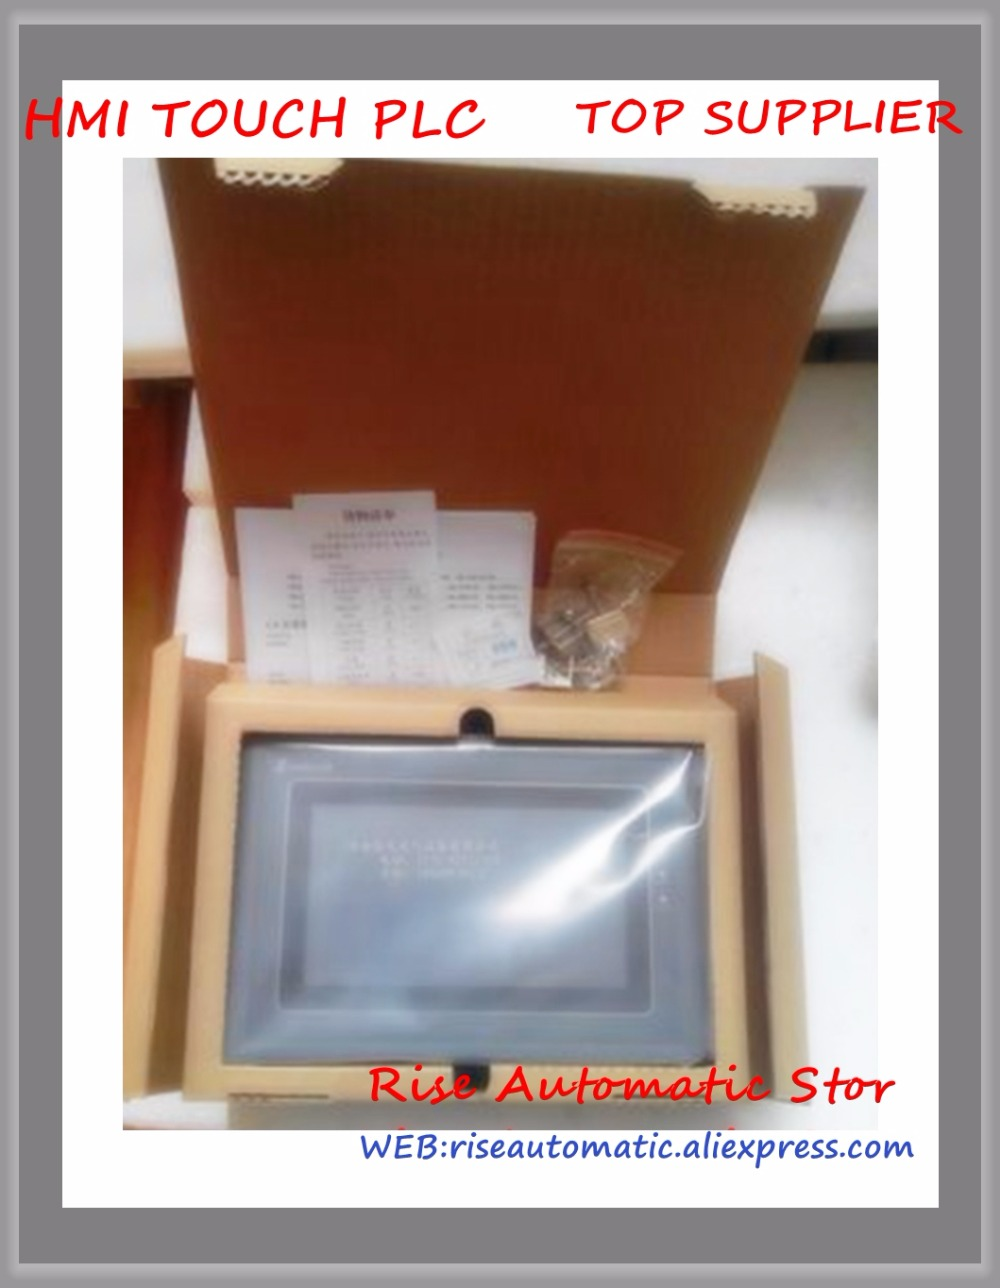 HMI Touch Screen Programming Cable SK 102AS SK 070AS high quality-in Brackets from Home Improvement    1